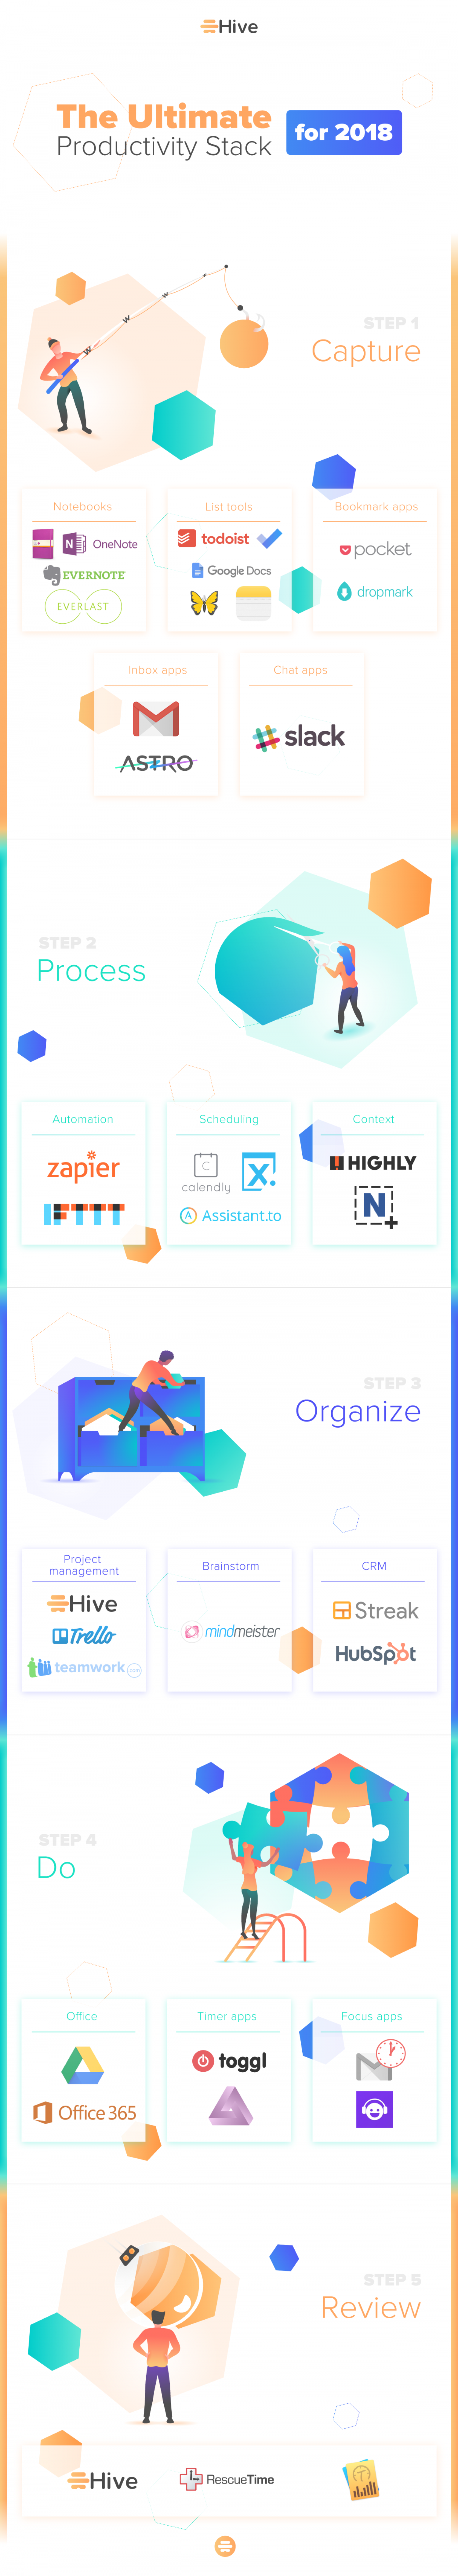 The Ultimate Productivity Stack for 2018: Must-Have Productivity Apps Infographic